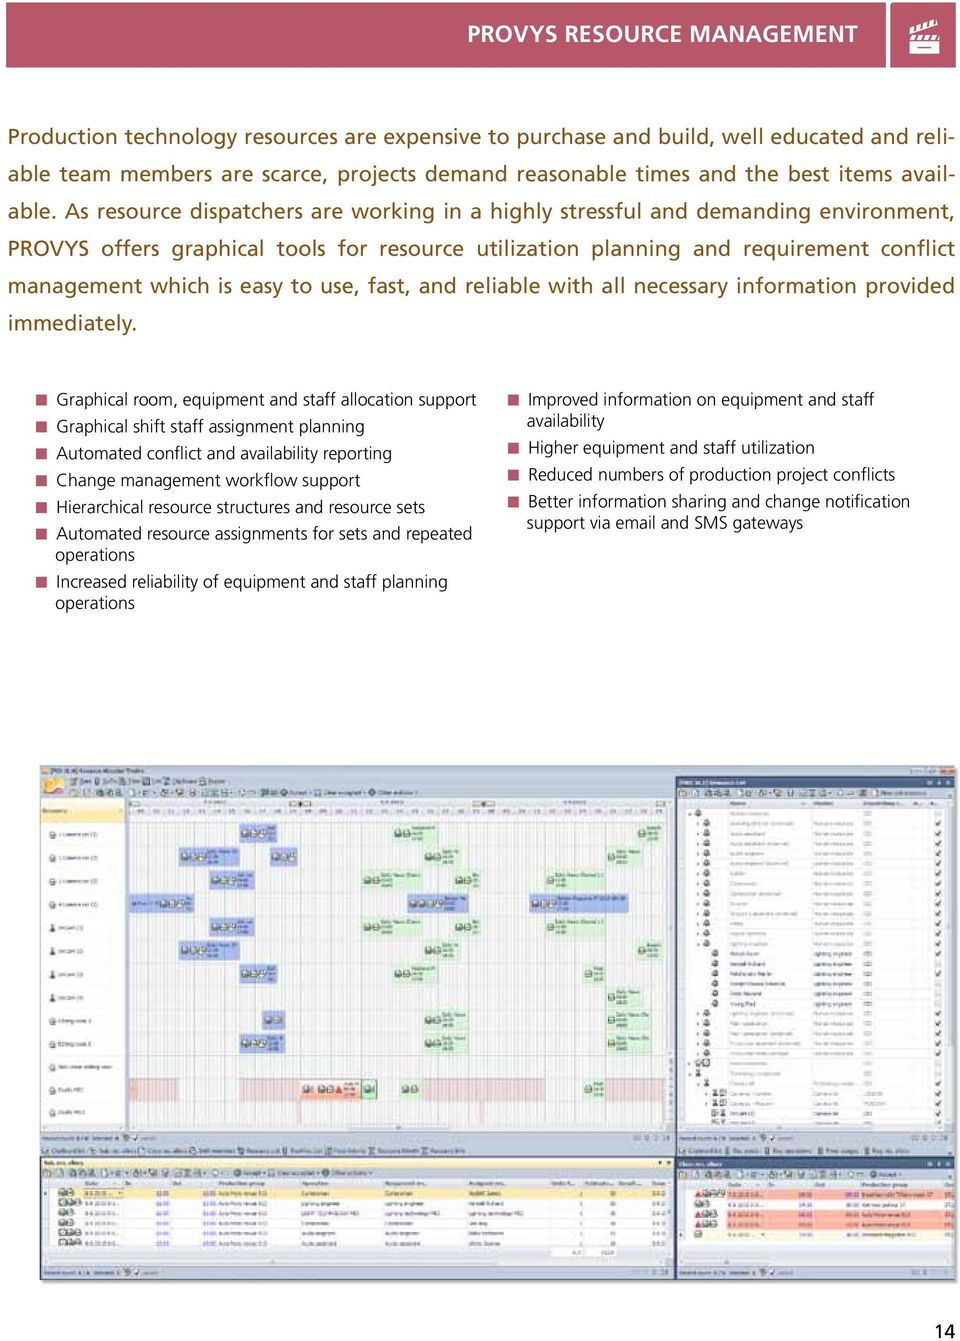 As resource dispatchers are working in a highly stressful and demanding environment, PROVYS offers graphical tools for resource utilization planning and requirement conflict management which is easy